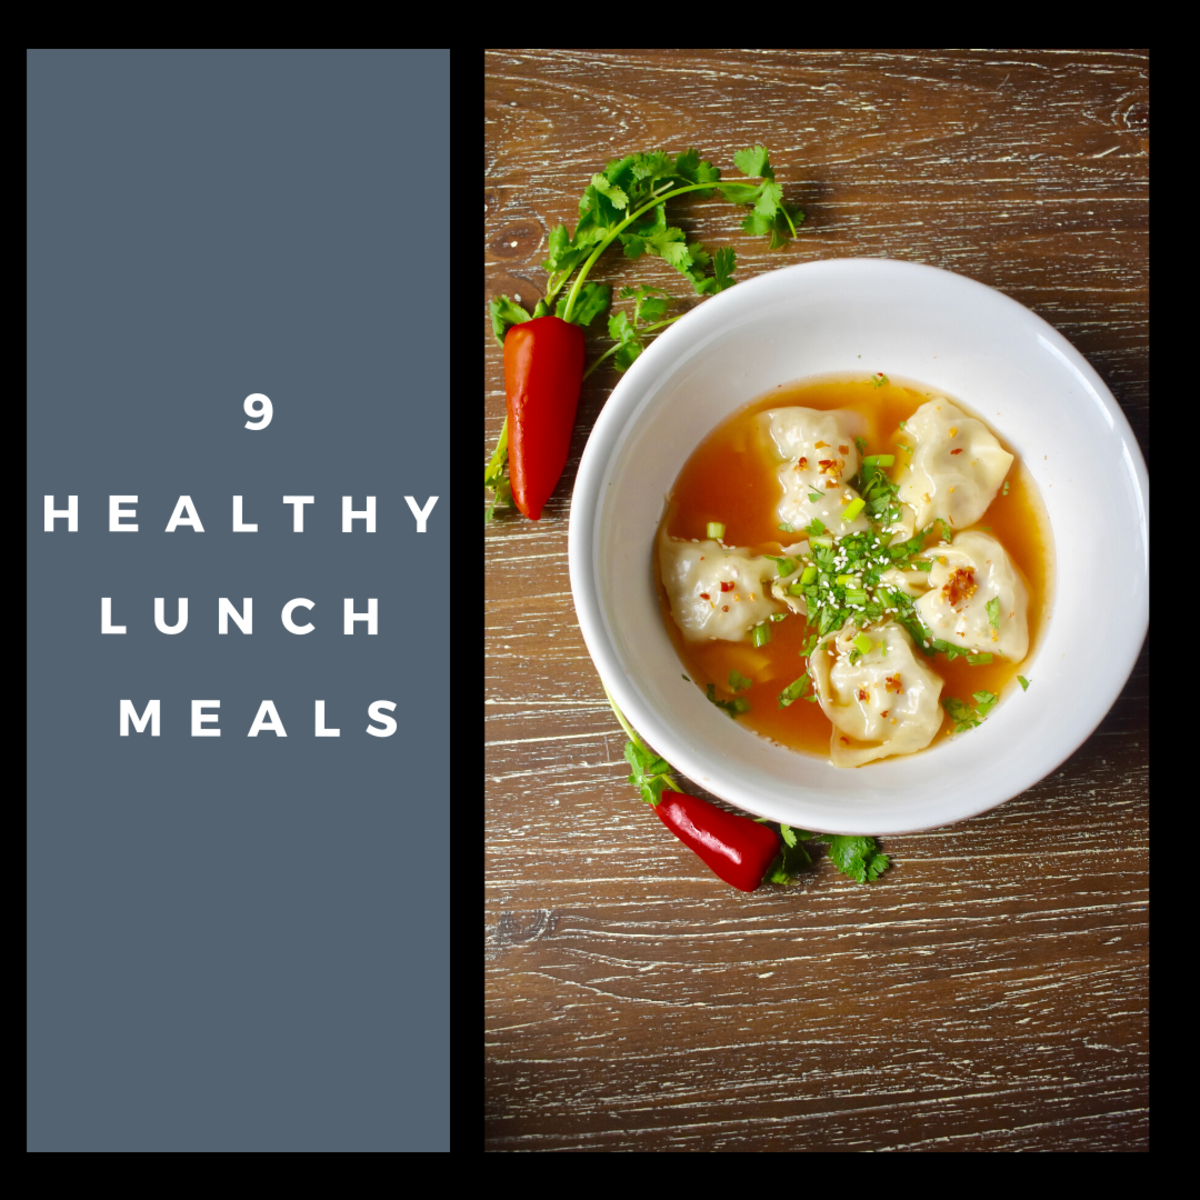 These Weight Watchers recipes will help you stay healthy and fit.